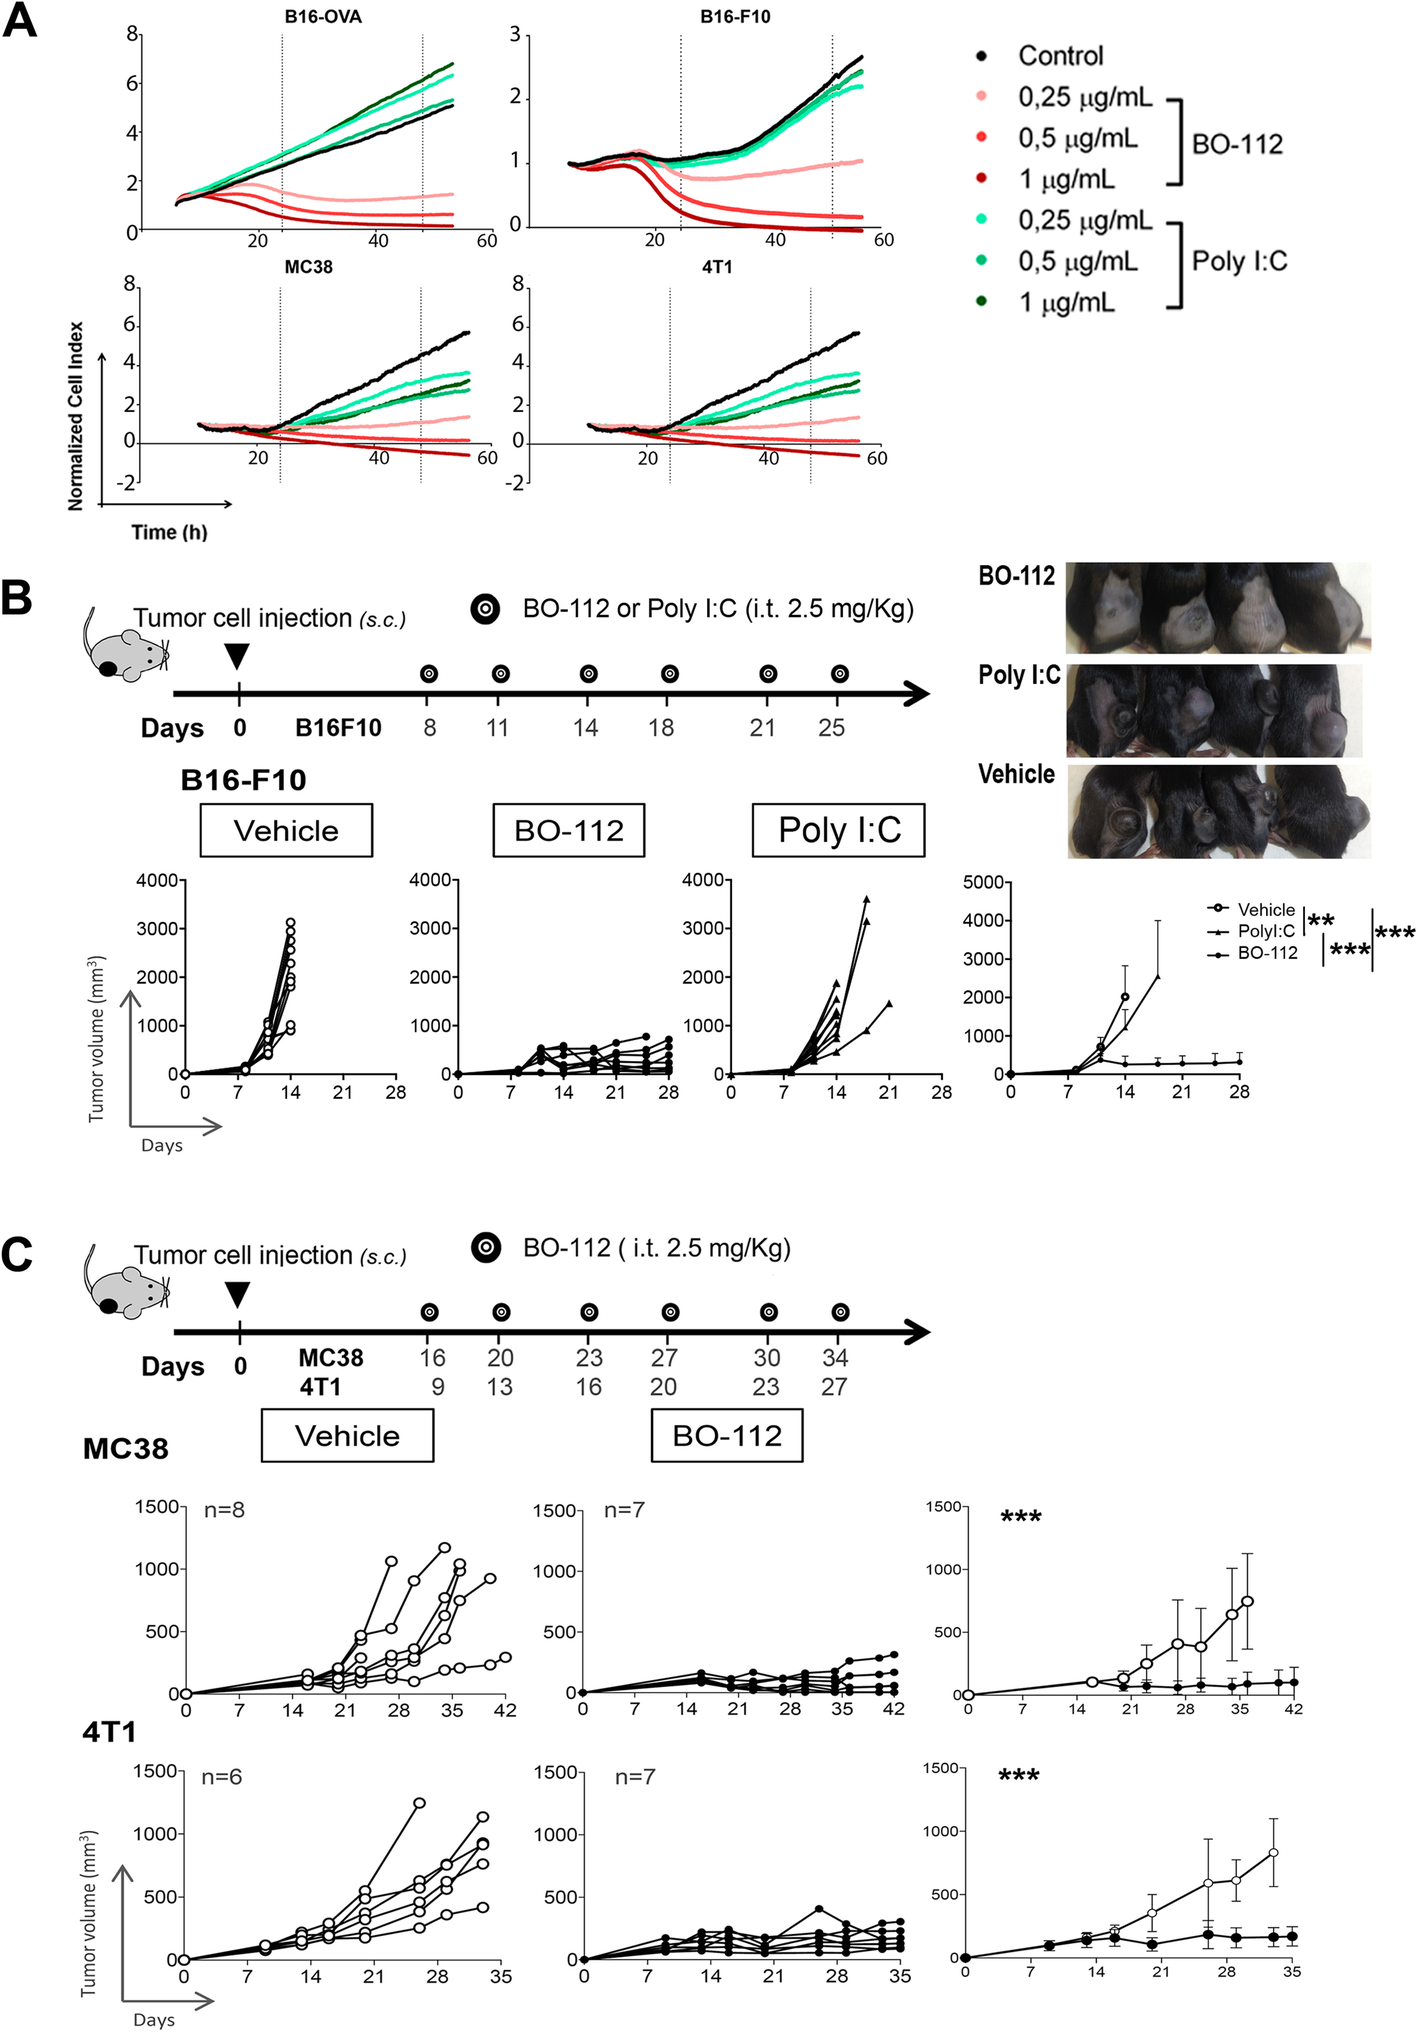 Immunotherapeutic effects of intratumoral nanoplexed poly I:C